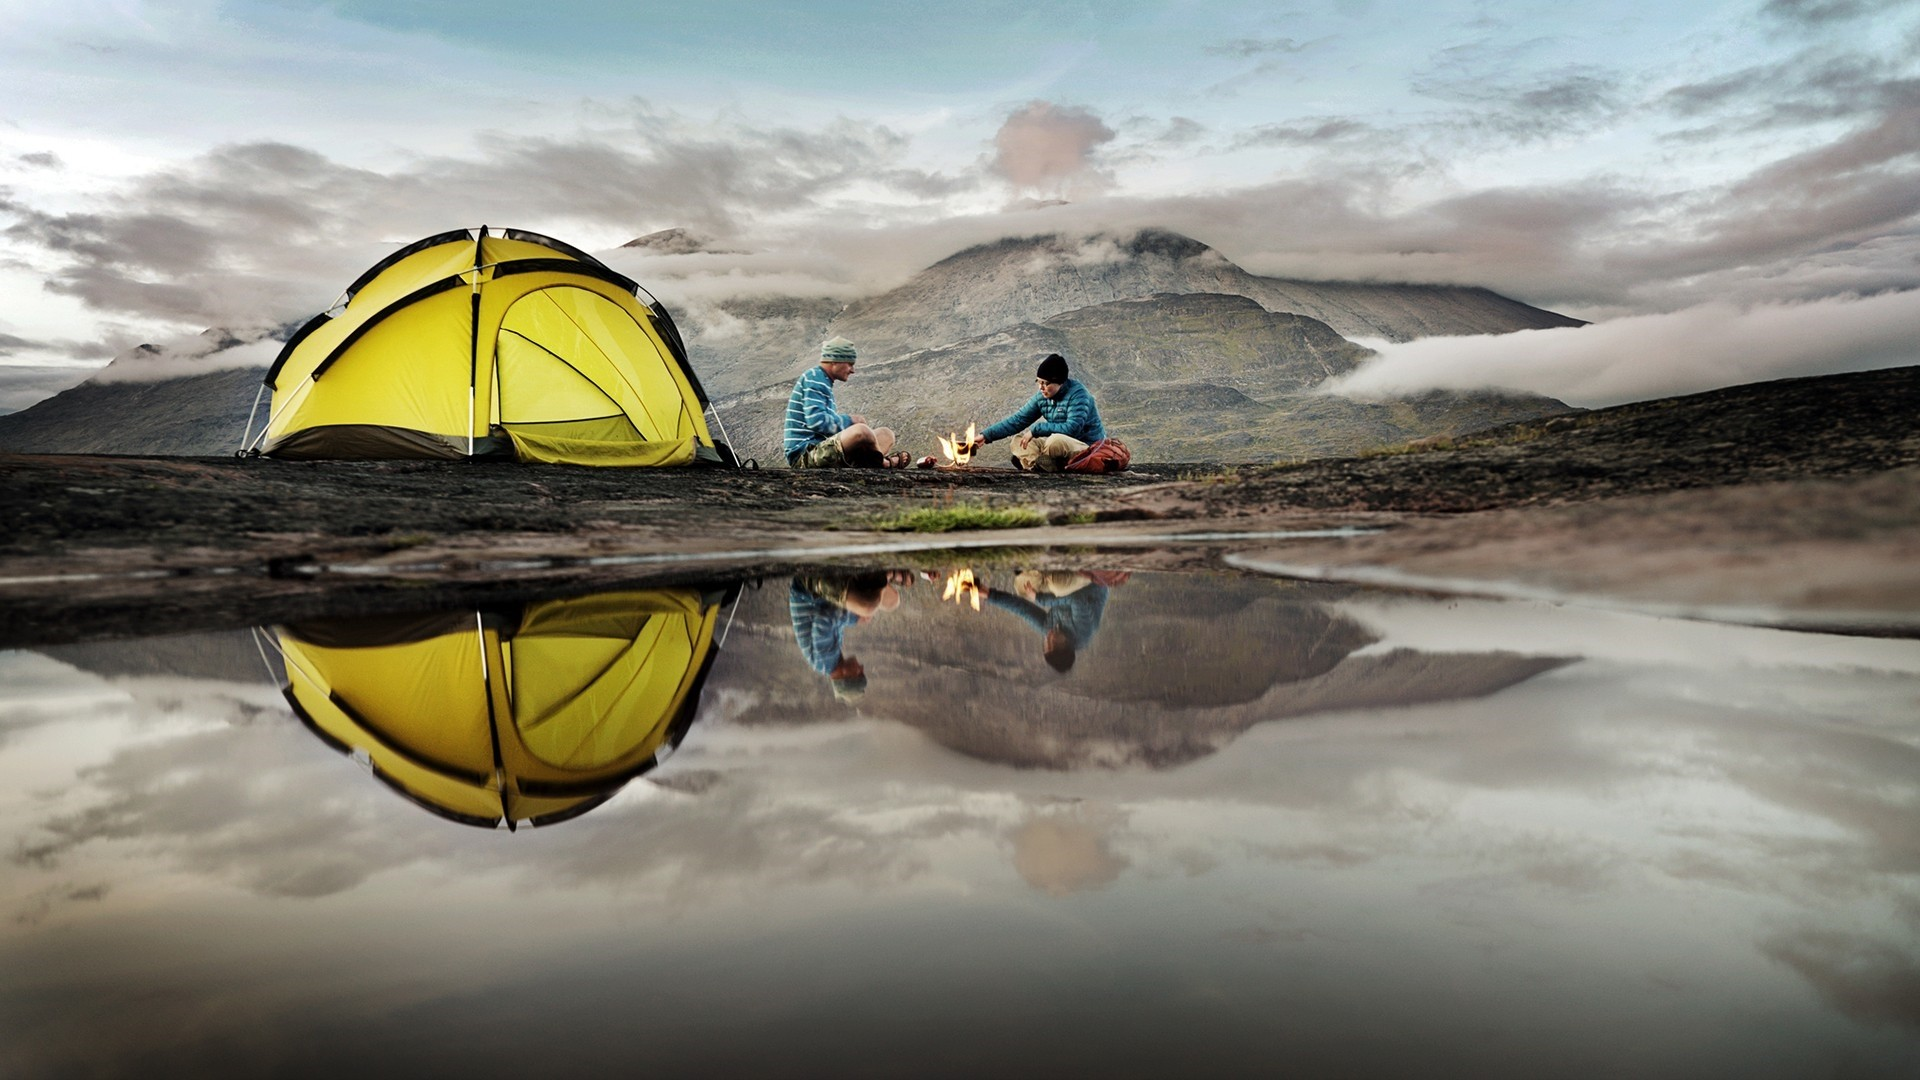 Camping Free Wallpaper and Background